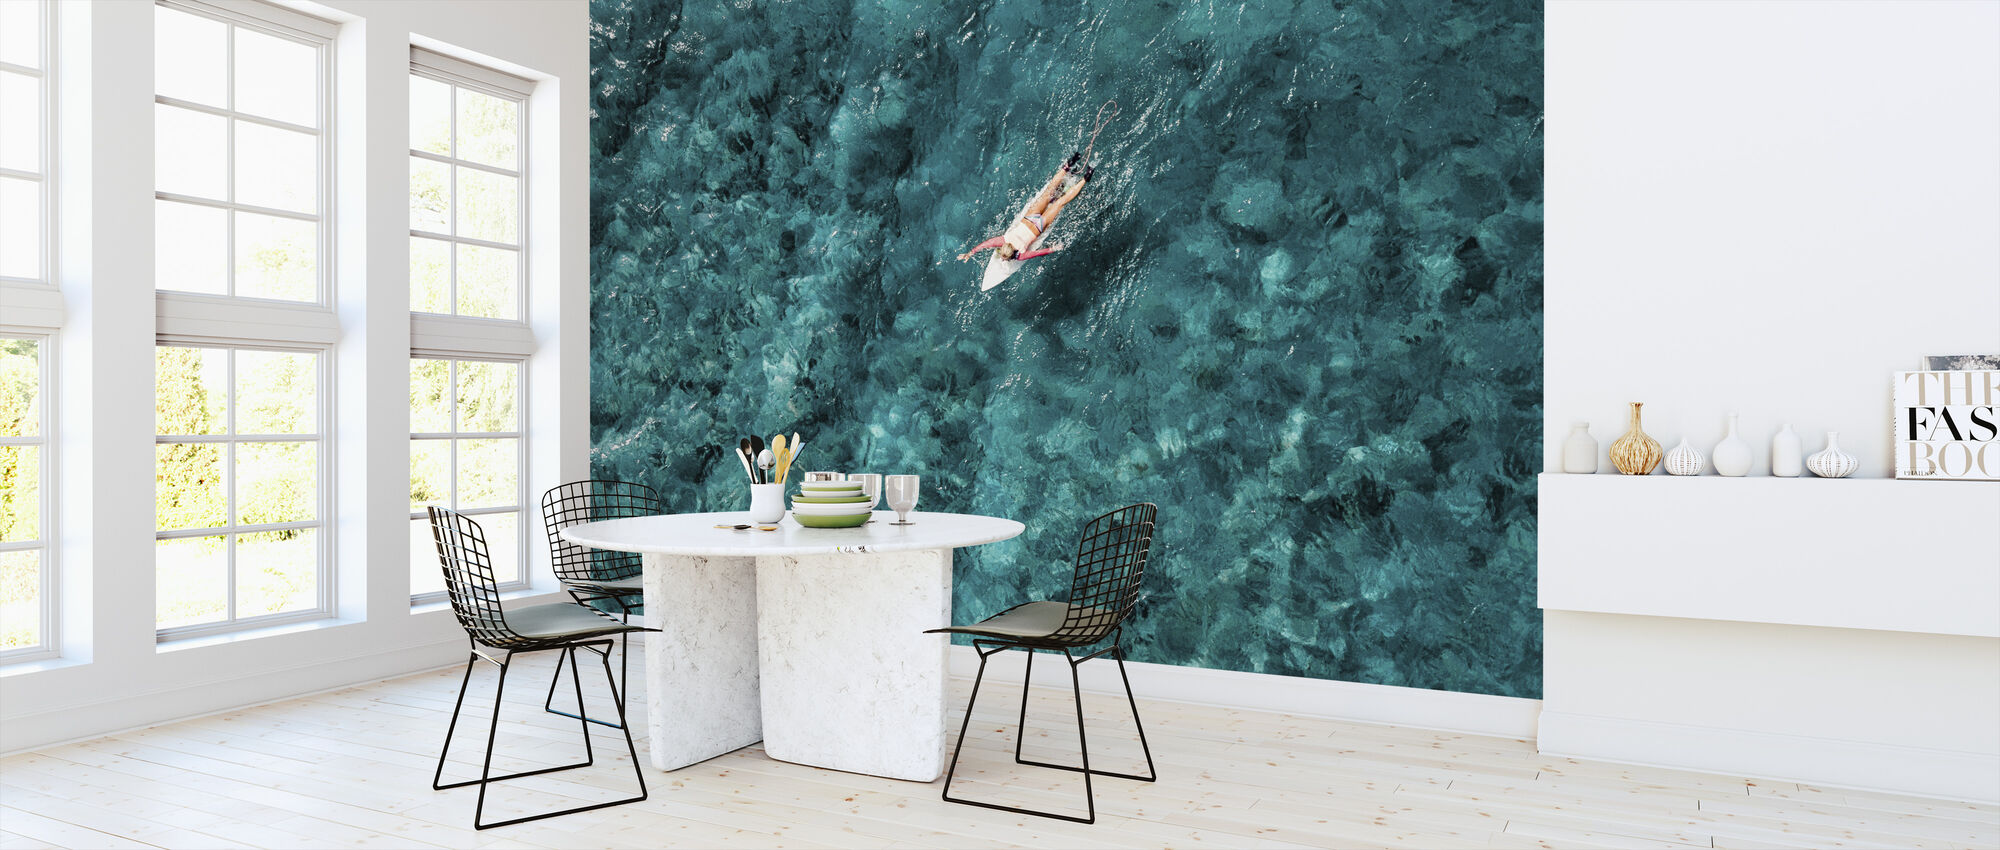 Surf Paddling in the Sea - Wallpaper - Kitchen